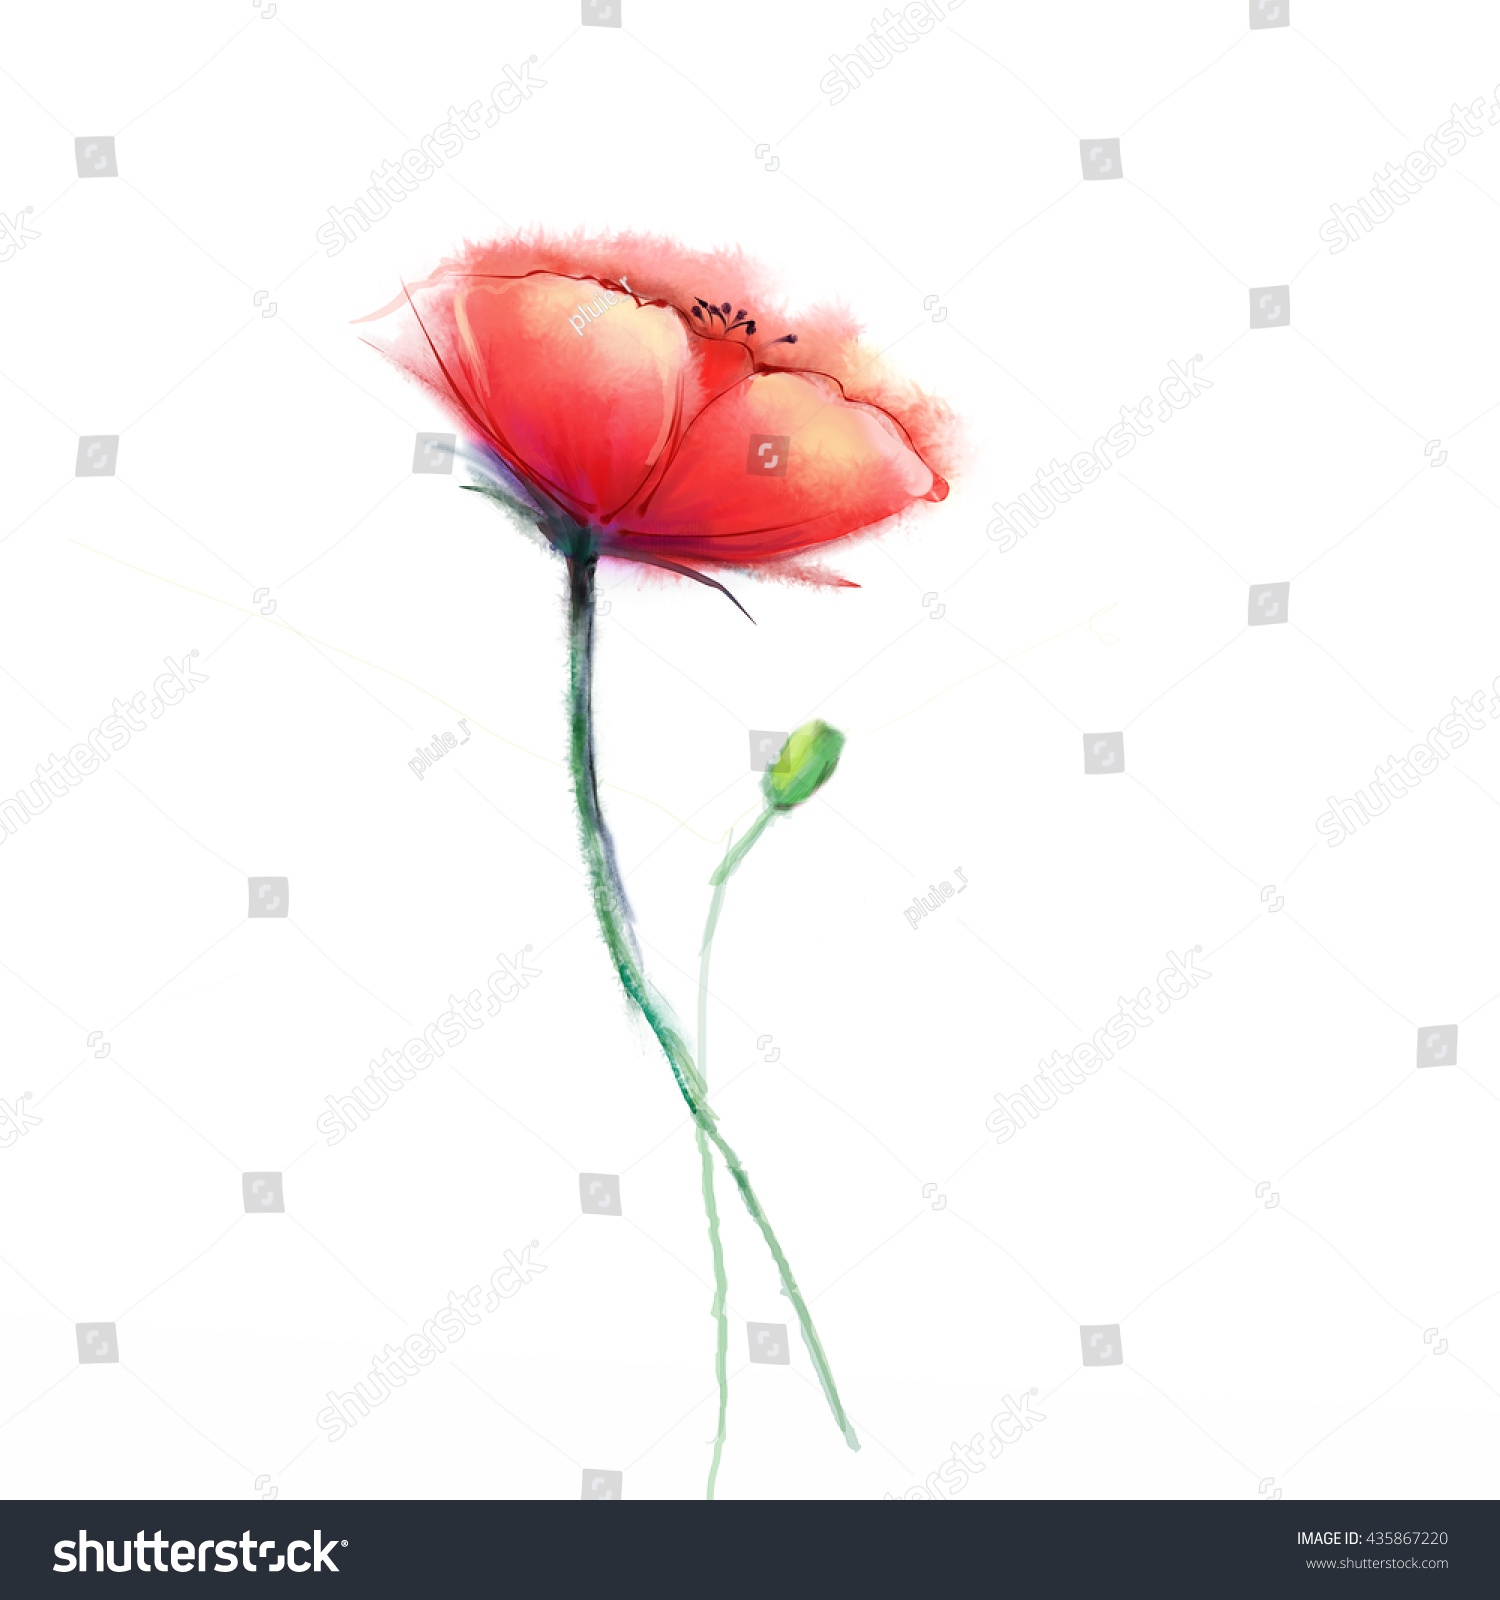 Watercolor painting poppy flower isolated flowers stock illustration watercolor painting poppy flower isolated flowers on white background pink and red poppy flower mightylinksfo